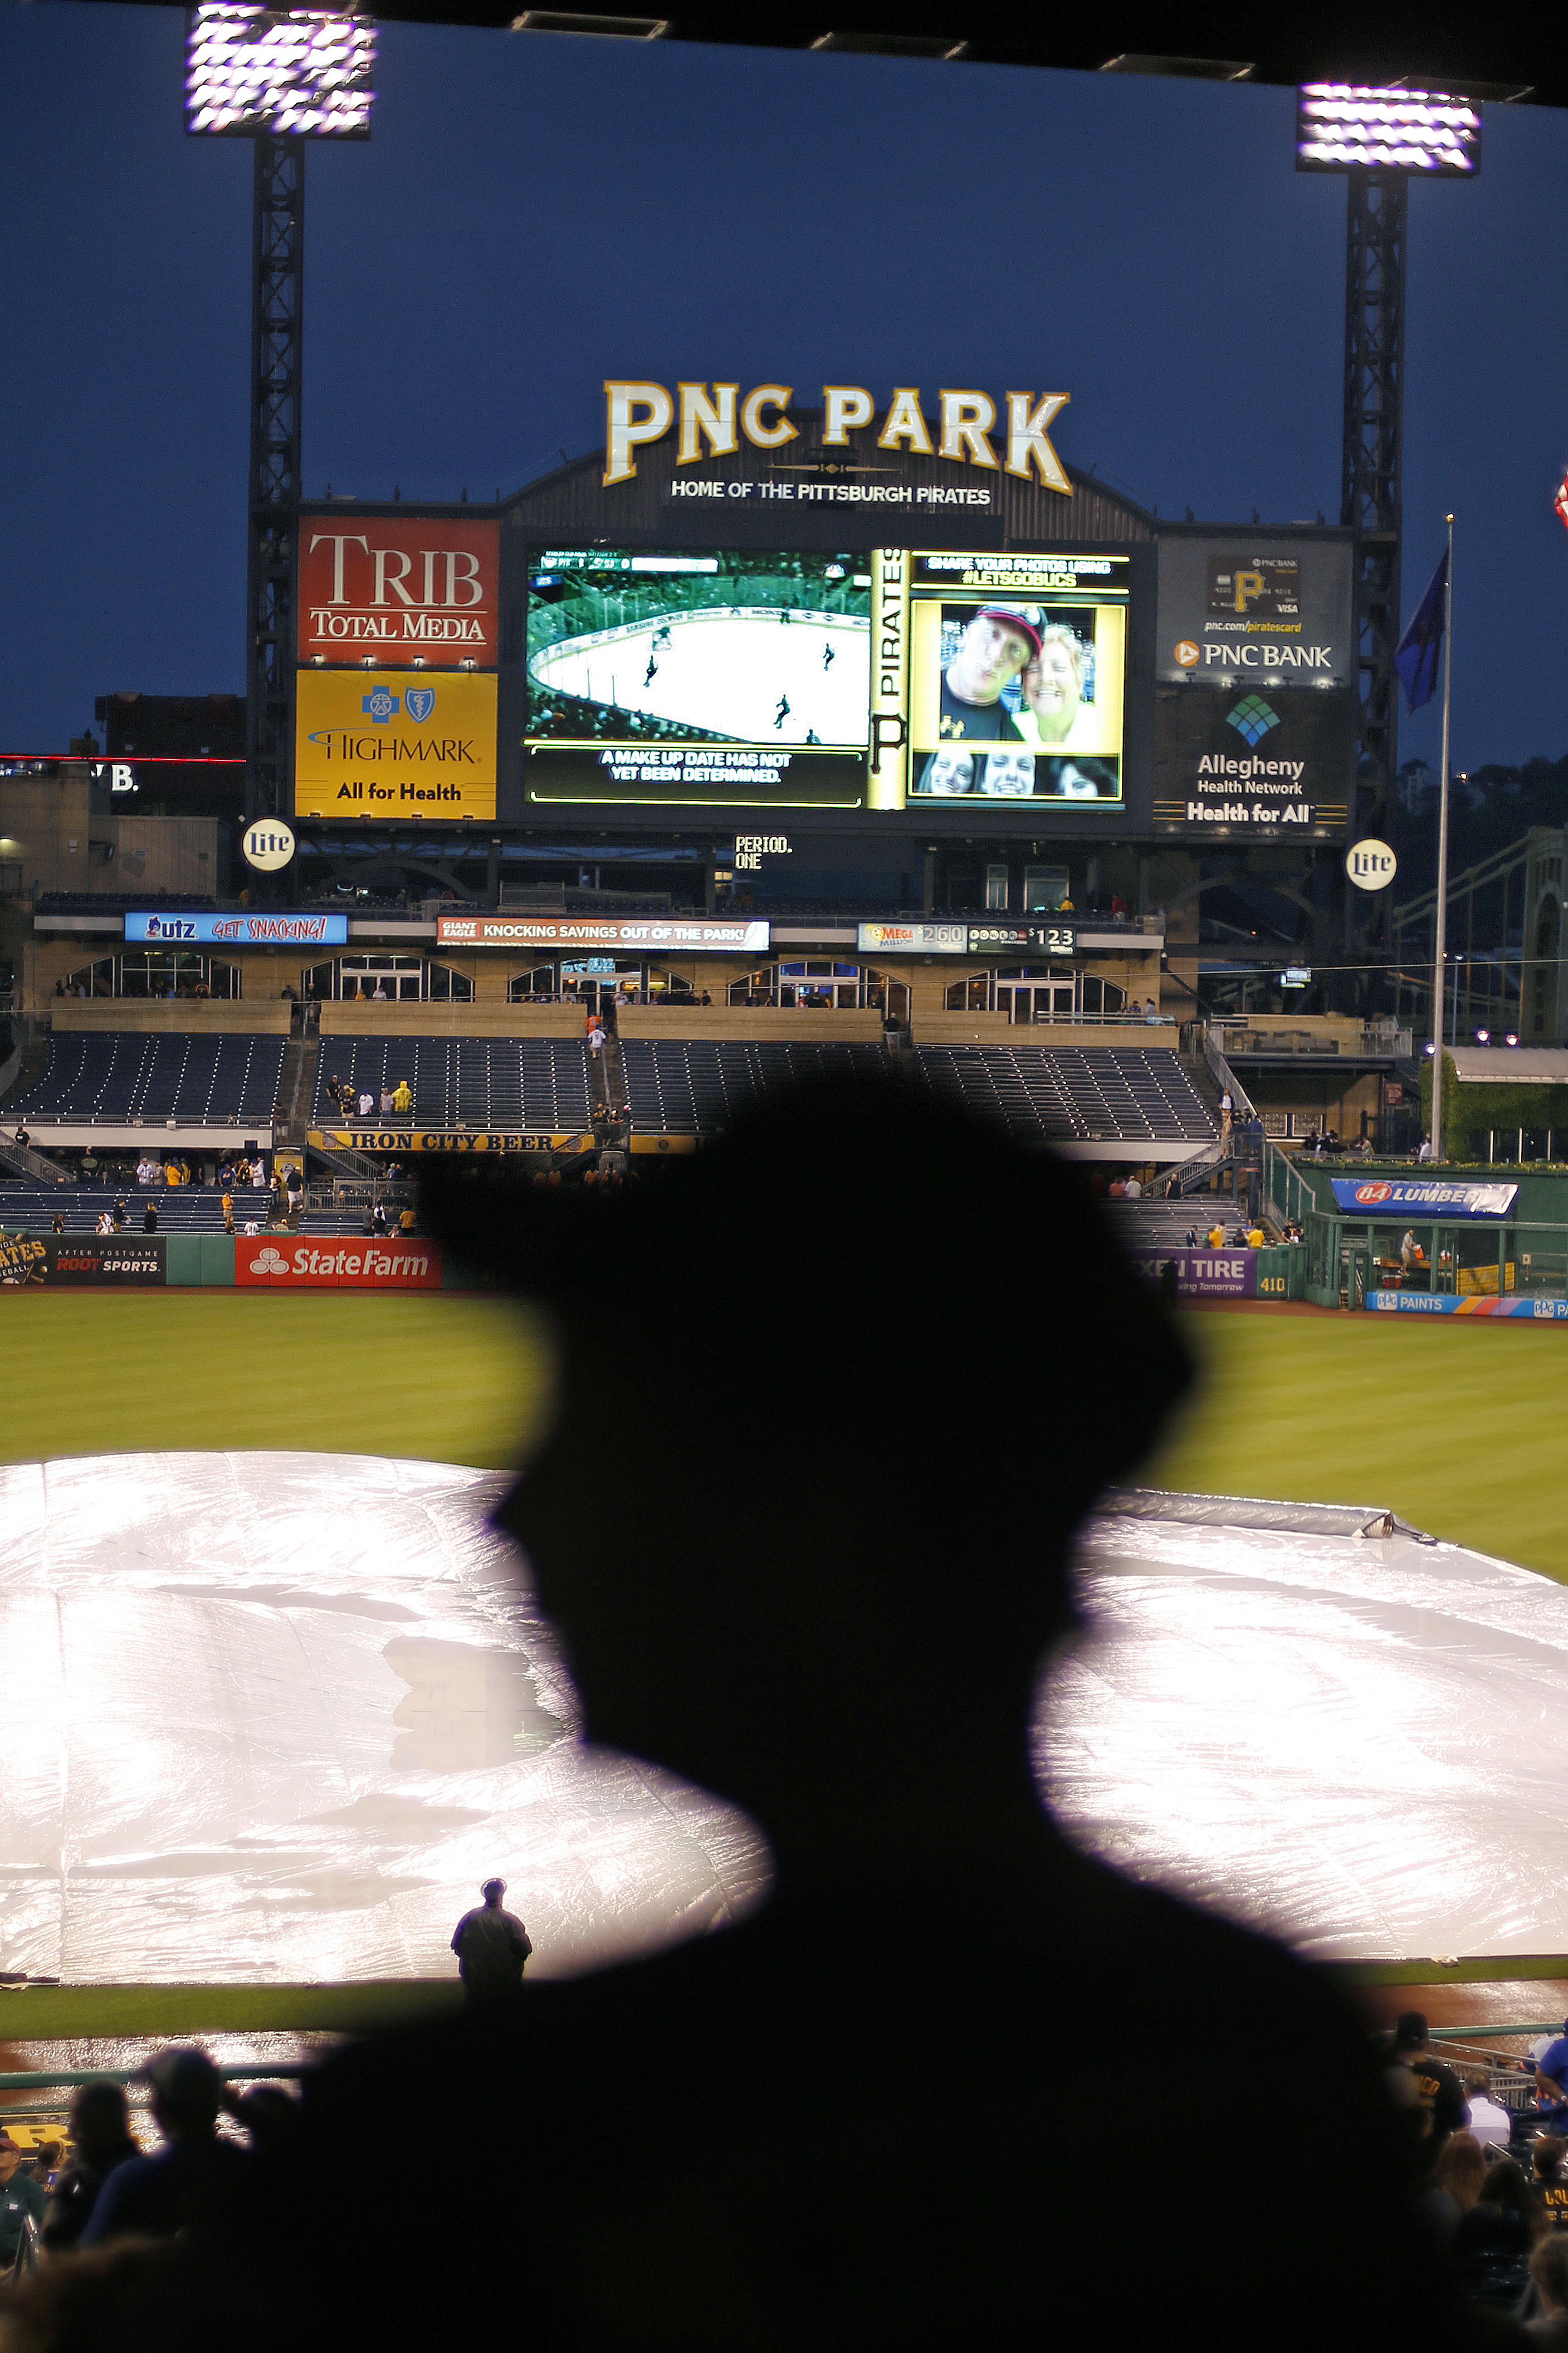 Baseball fans watch Game 4 of the Stanley Cup Finals series between the Pittsburgh Penguins and San Jose Sharks on the scoreboard at PNC Park before the baseball game between the Pittsburgh Pirates and the New York Mets was postponed due to rain in Pittsb